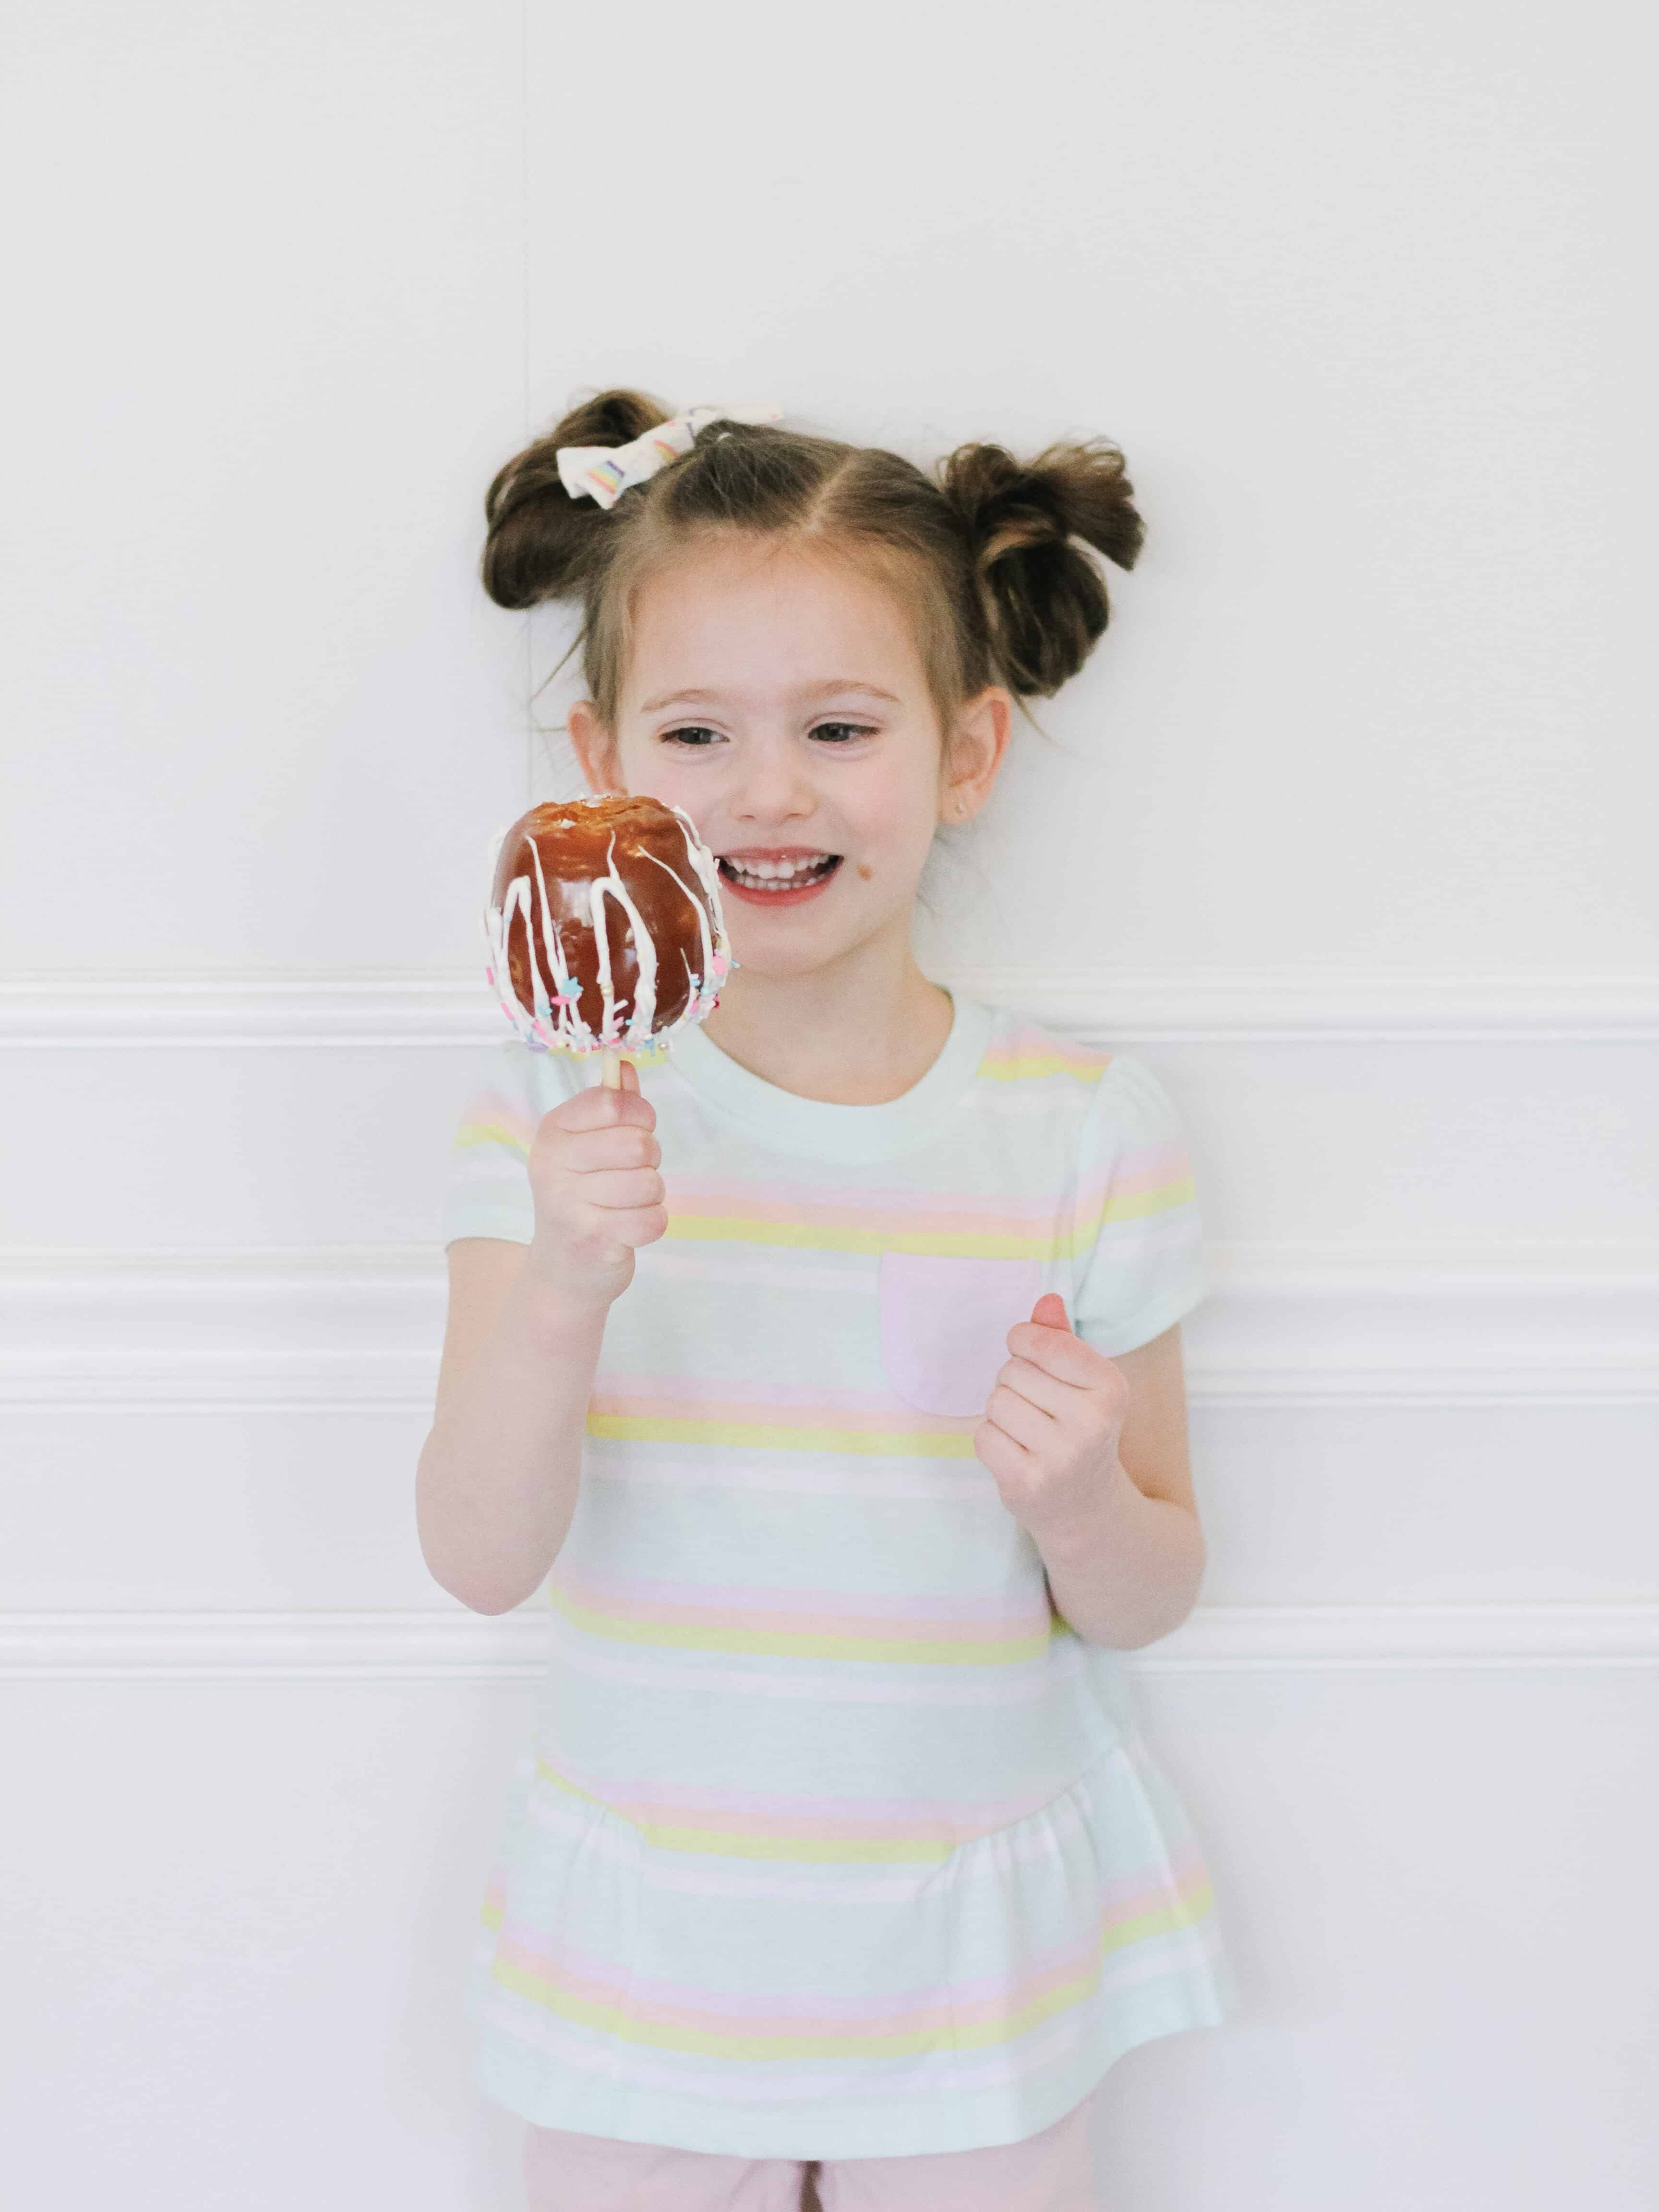 Little girl eating a unicorn caramel apple